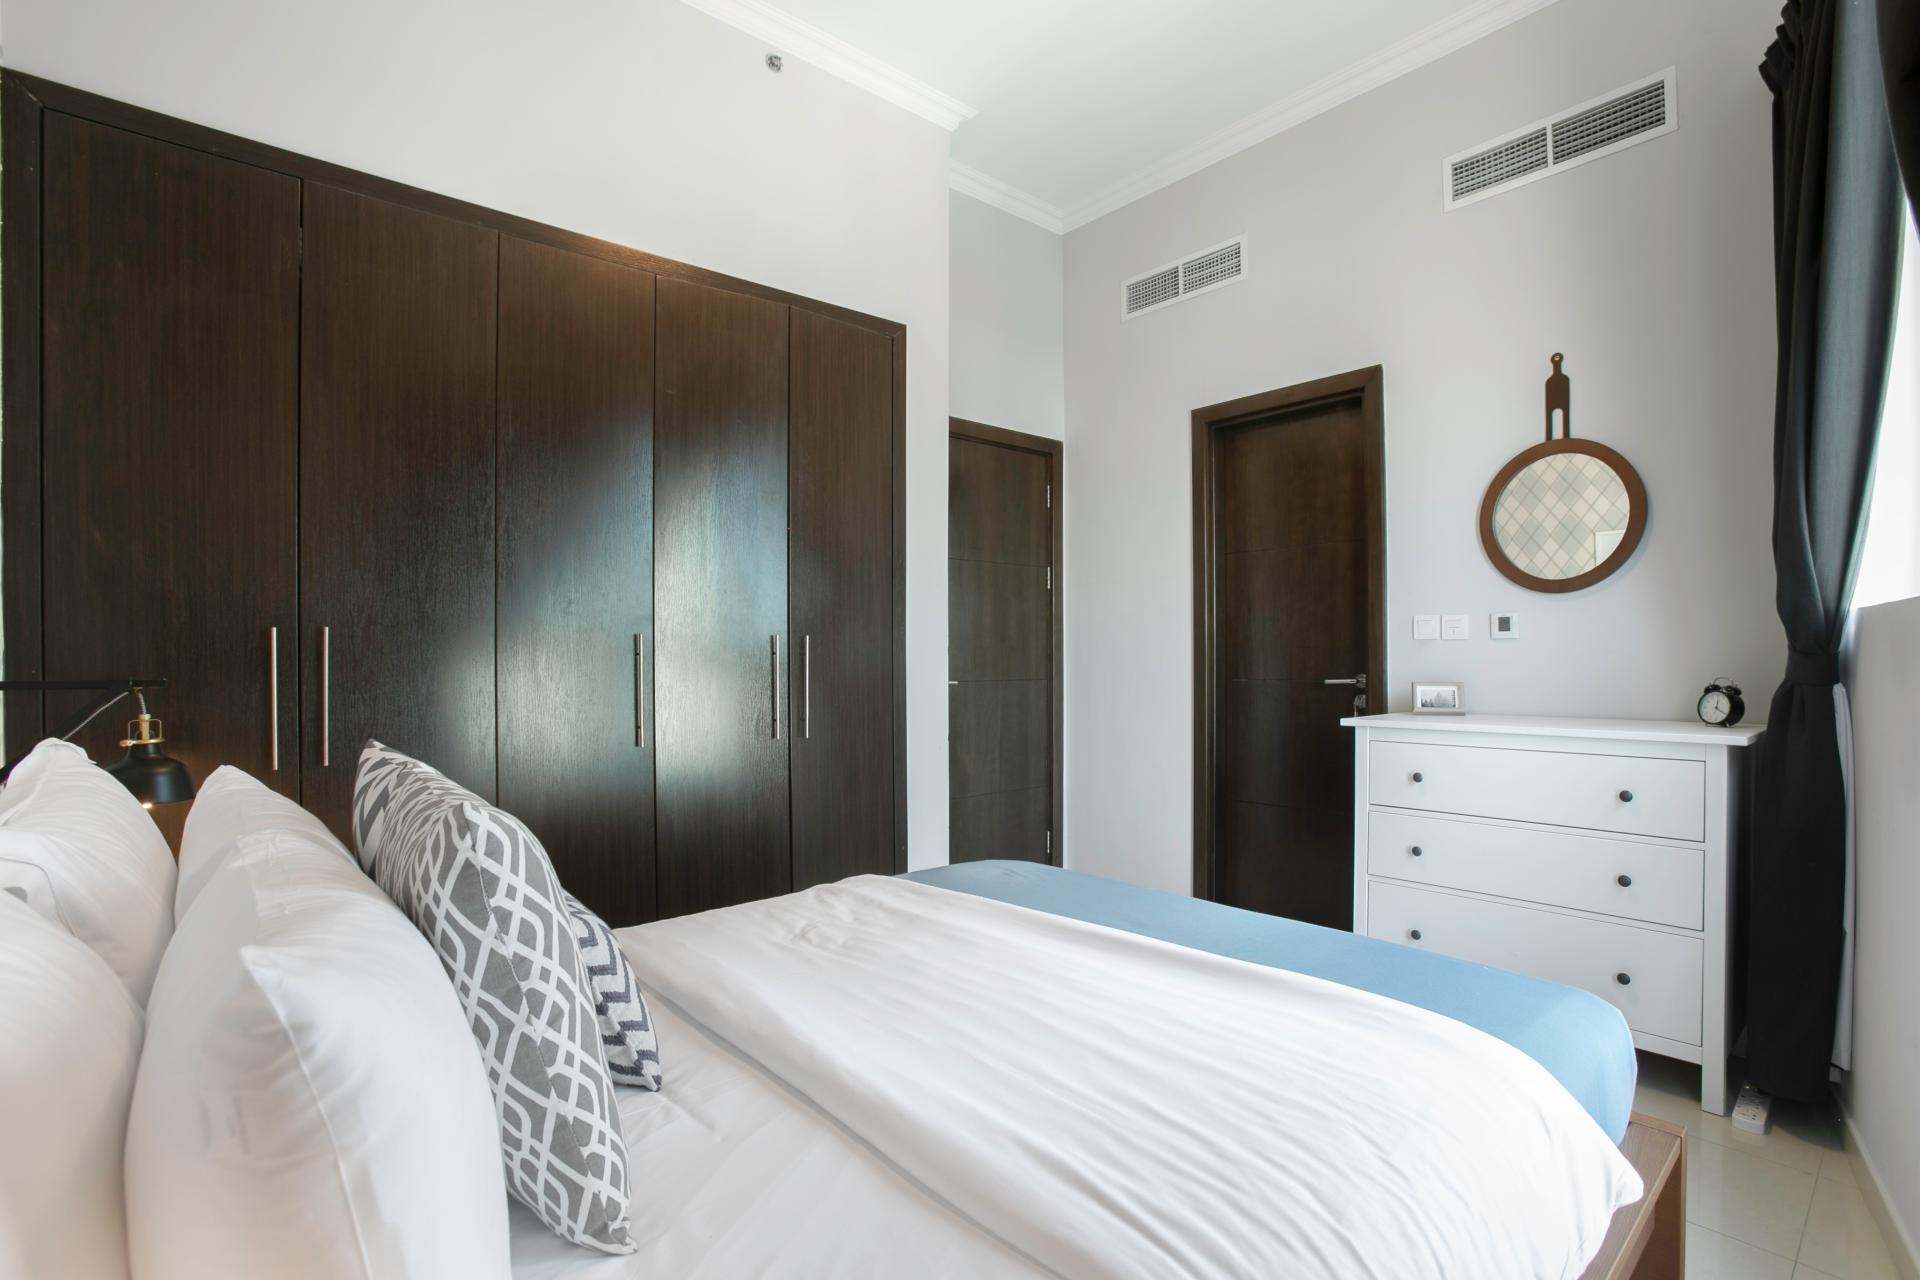 Bedroom storage at Royal Oceanic Apartment